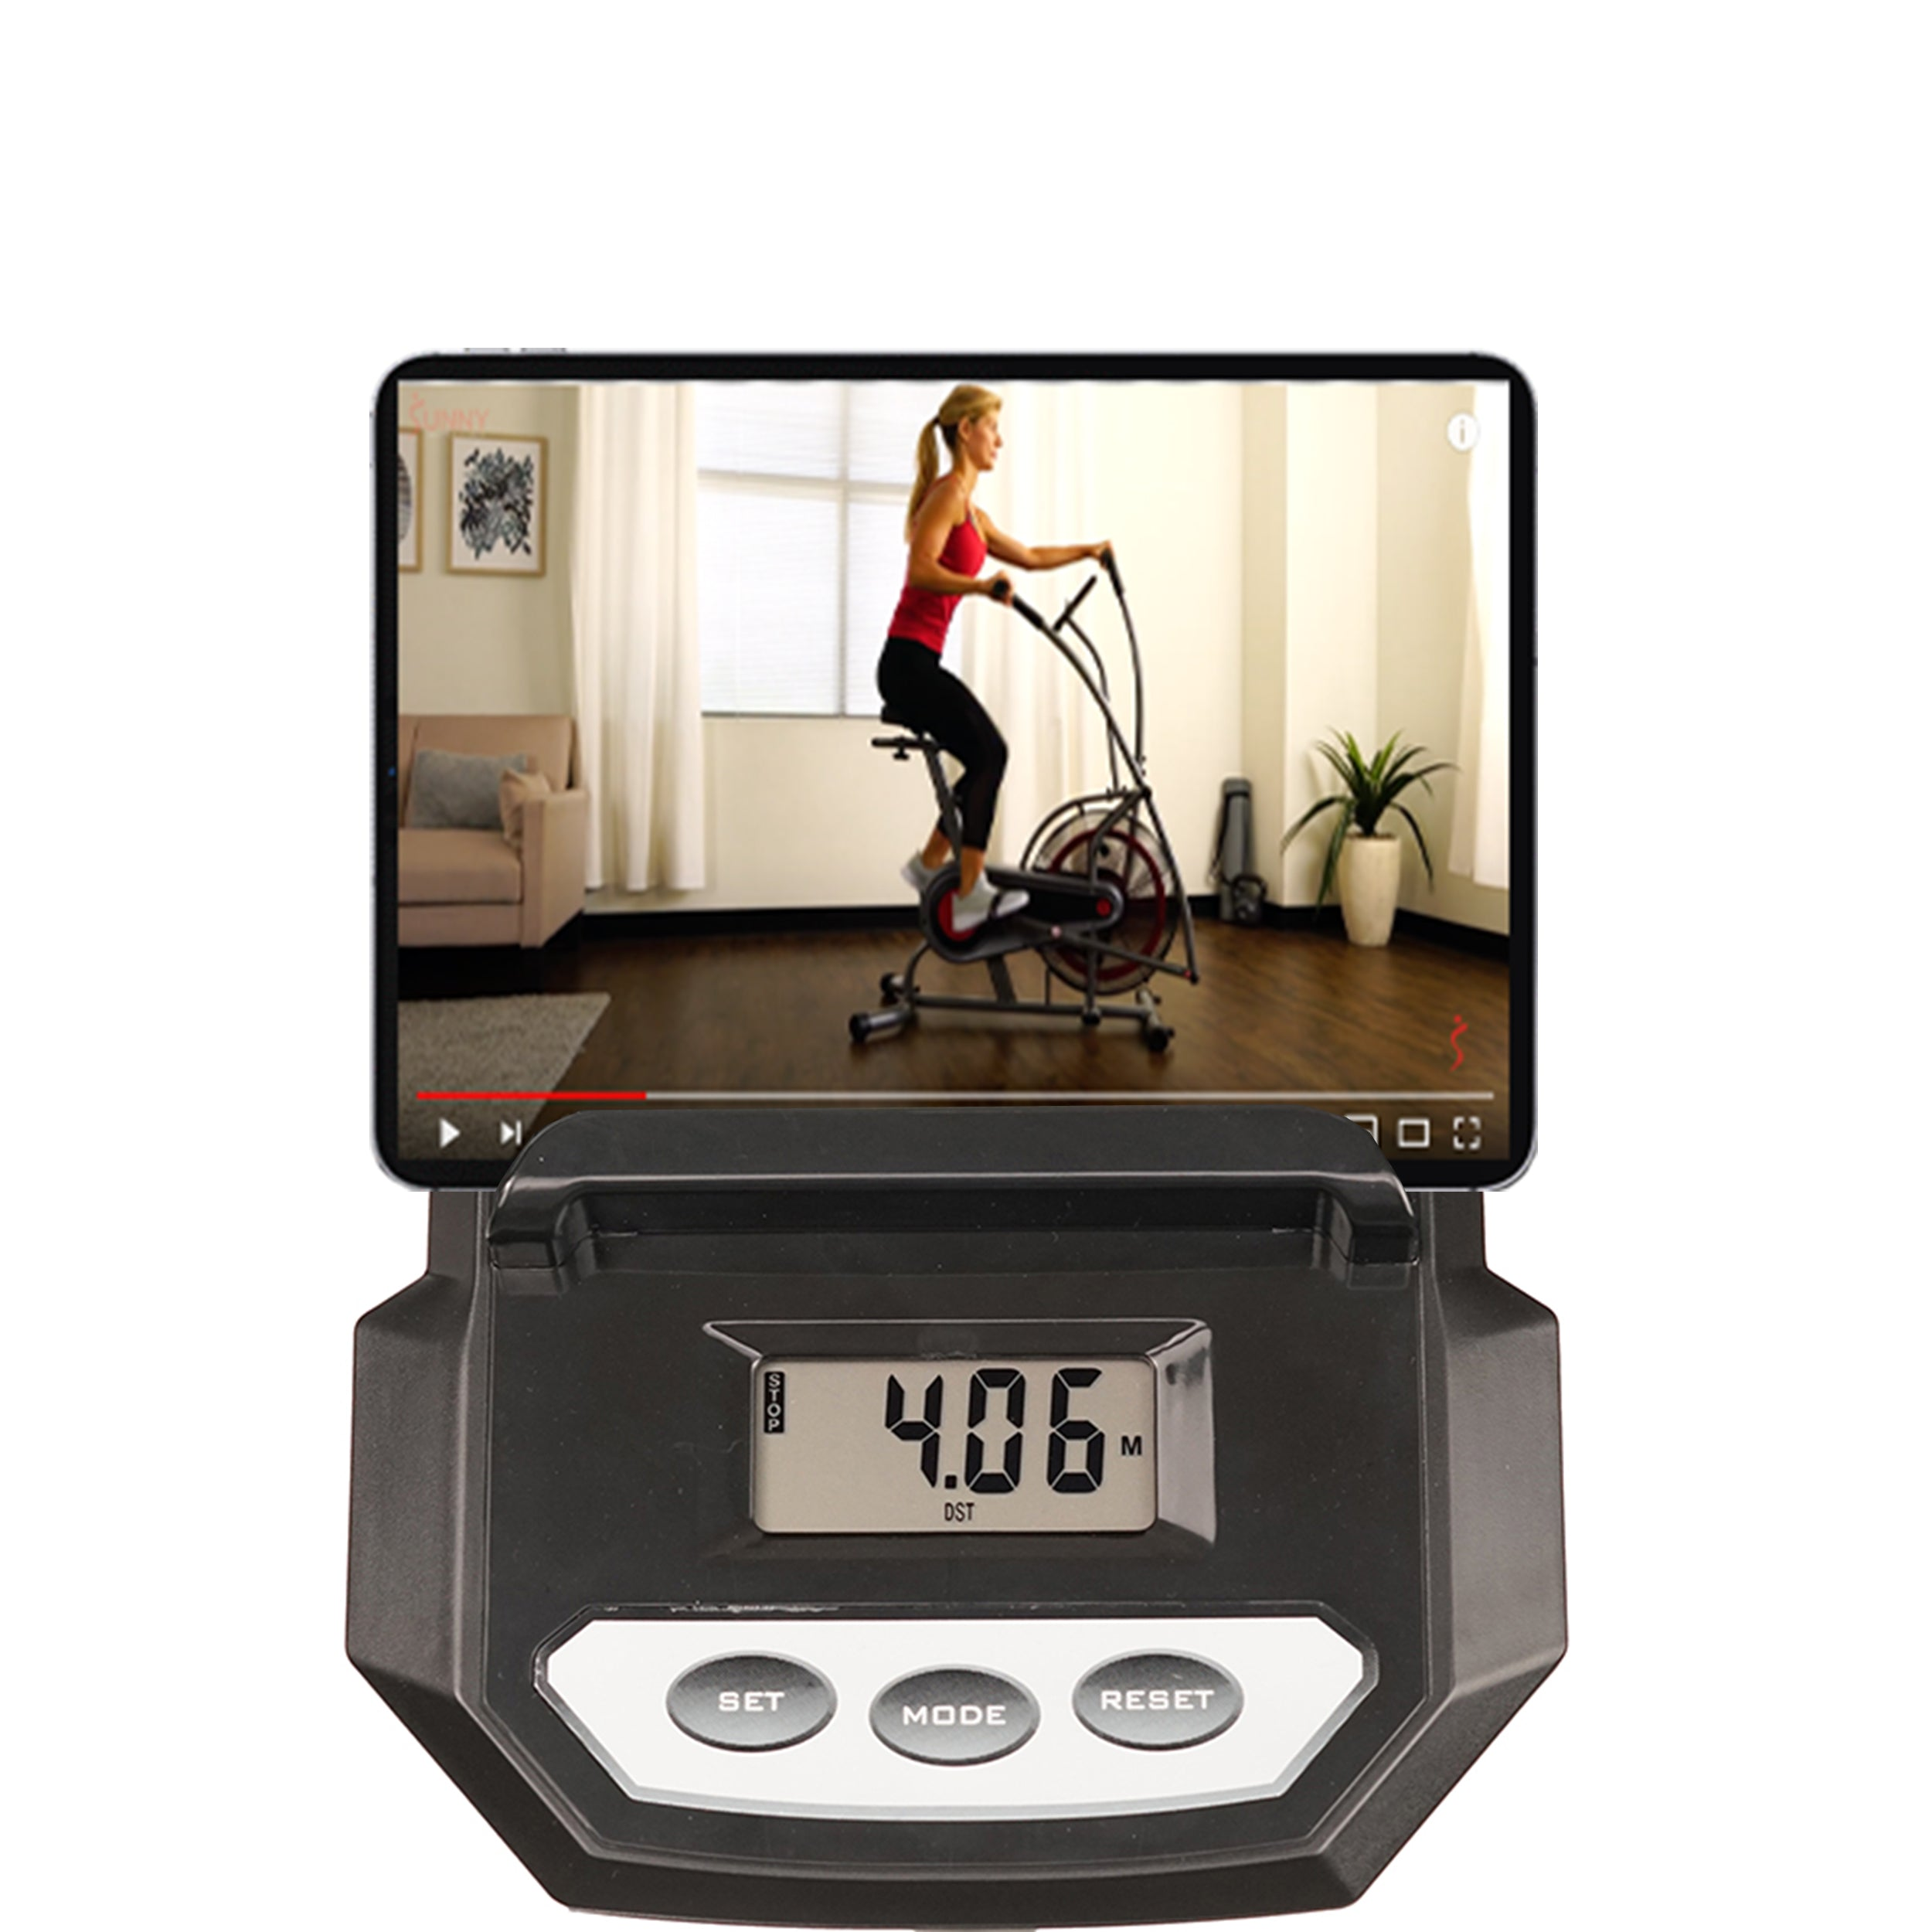 sunny-health-fitness-bikes-motion-air-bike-fan-exercise-bike-unlimited-resistance-tablet-holder-SF-B2916-monitor